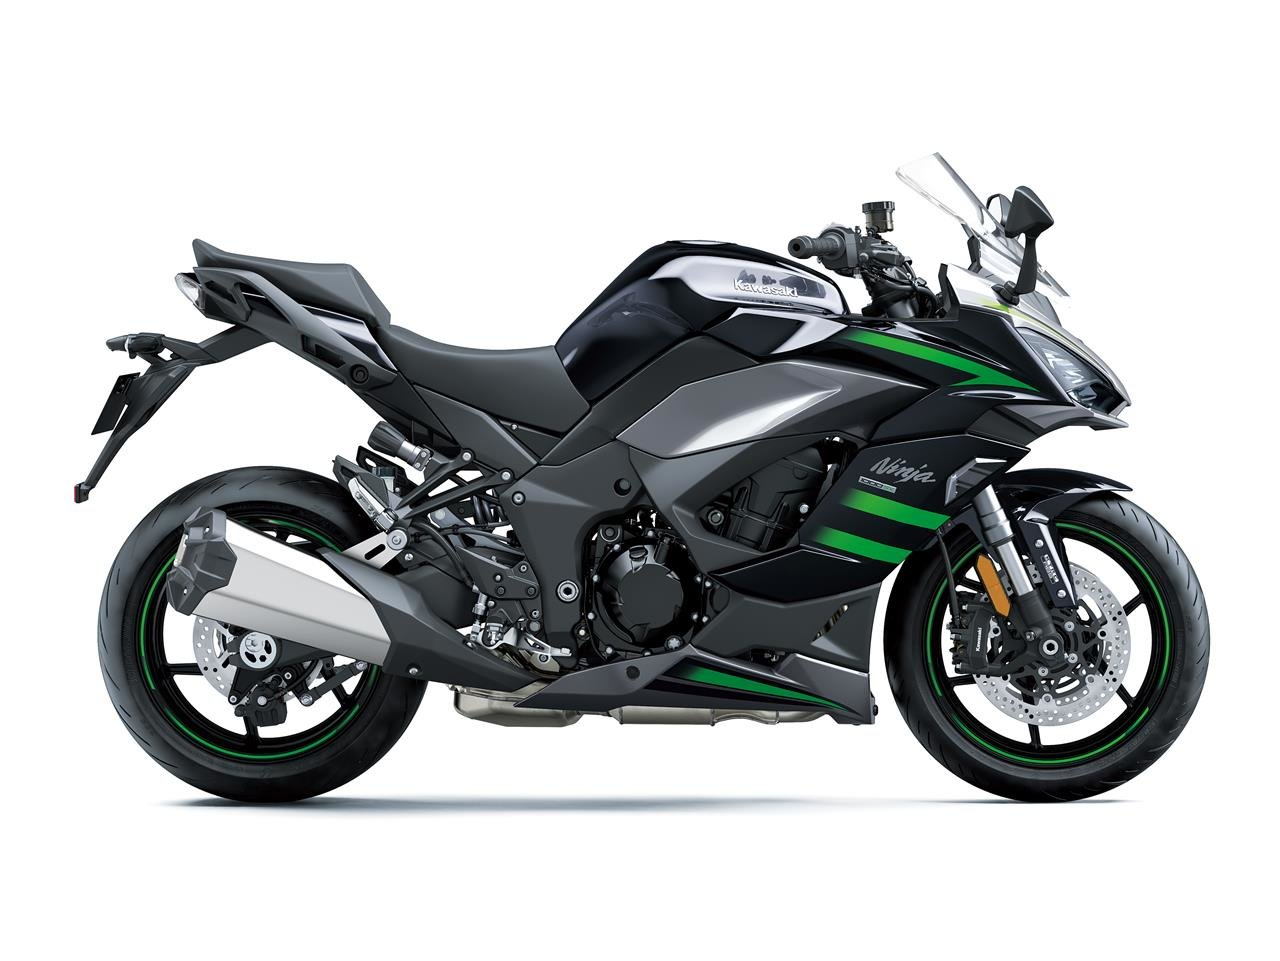 New 2020 Kawasaki Ninja 1000 SX SE **FREE DELIVERY** For Sale (picture 2 of 6)